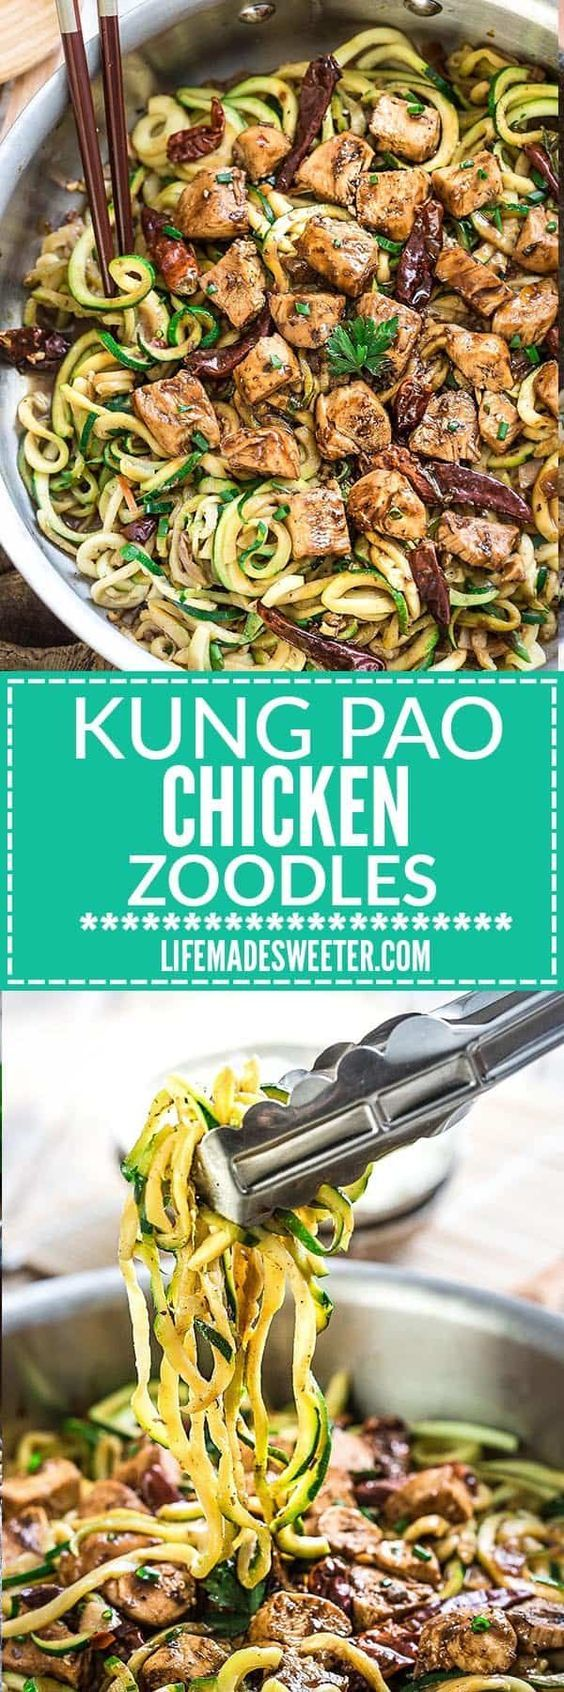 One Pan Kung Pao Chicken Zoodles {Zucchini Noodles} make the perfect easy low carb weeknight meal! Best of all so much better than takeout - only 30 minutes to make with just one pot to clean!